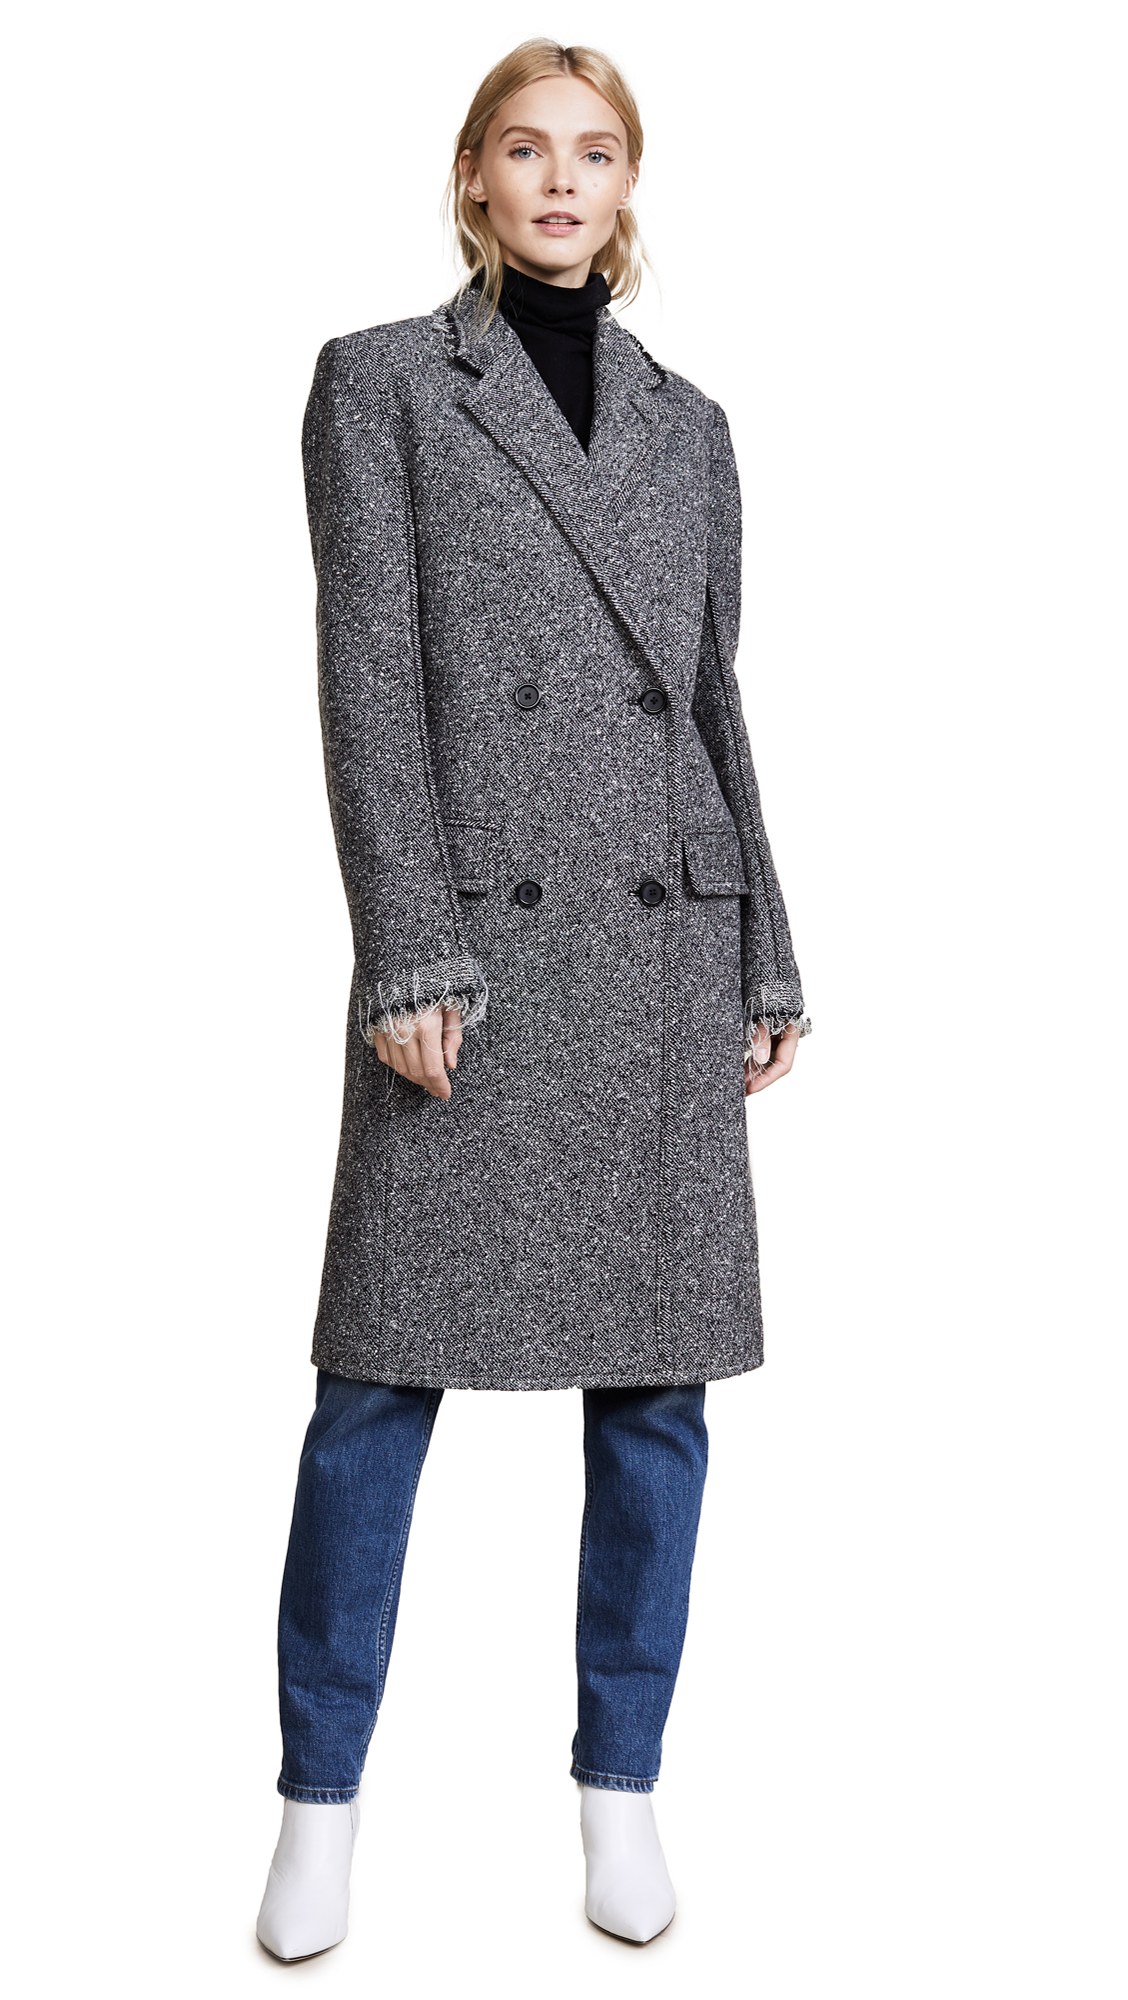 Helmut Lang Deconstructed Overcoat - Melange Grey